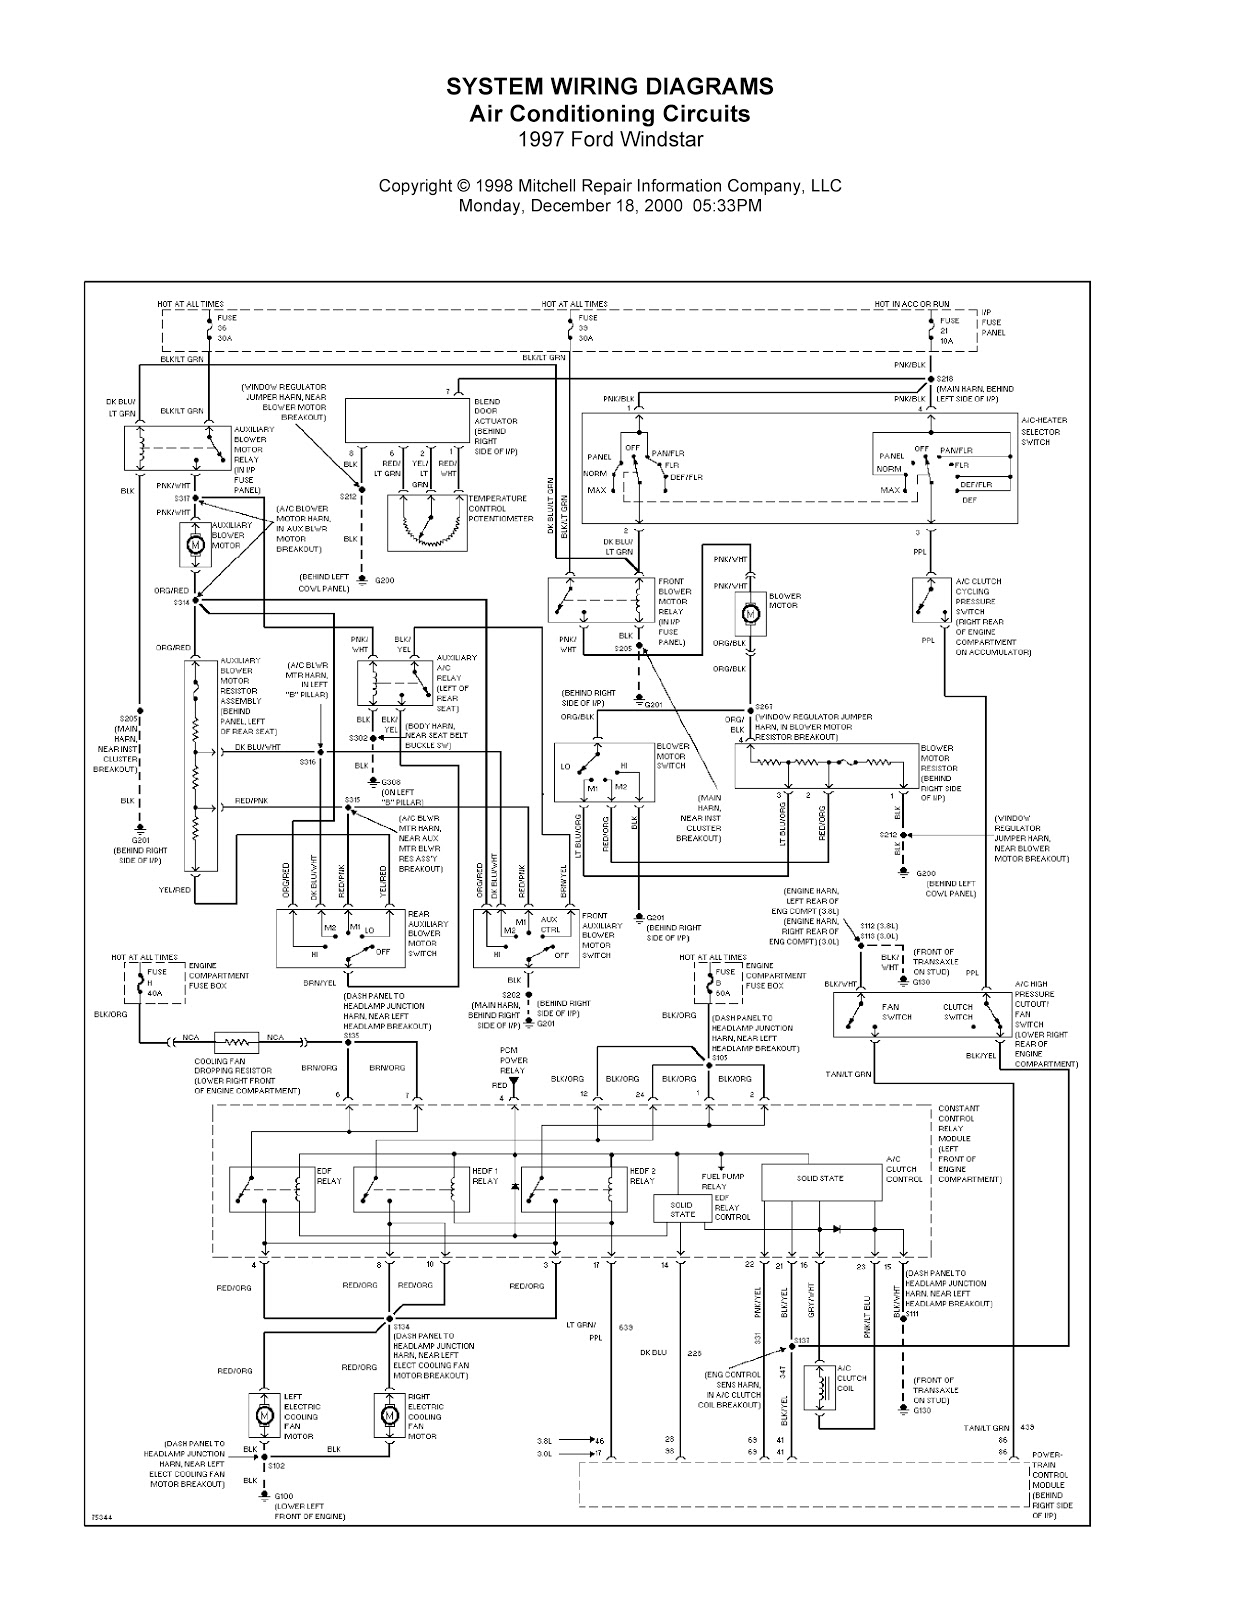 0001 1997 ford windstar complete system wiring diagrams wiring 1999 ford windstar fuse box diagram at edmiracle.co